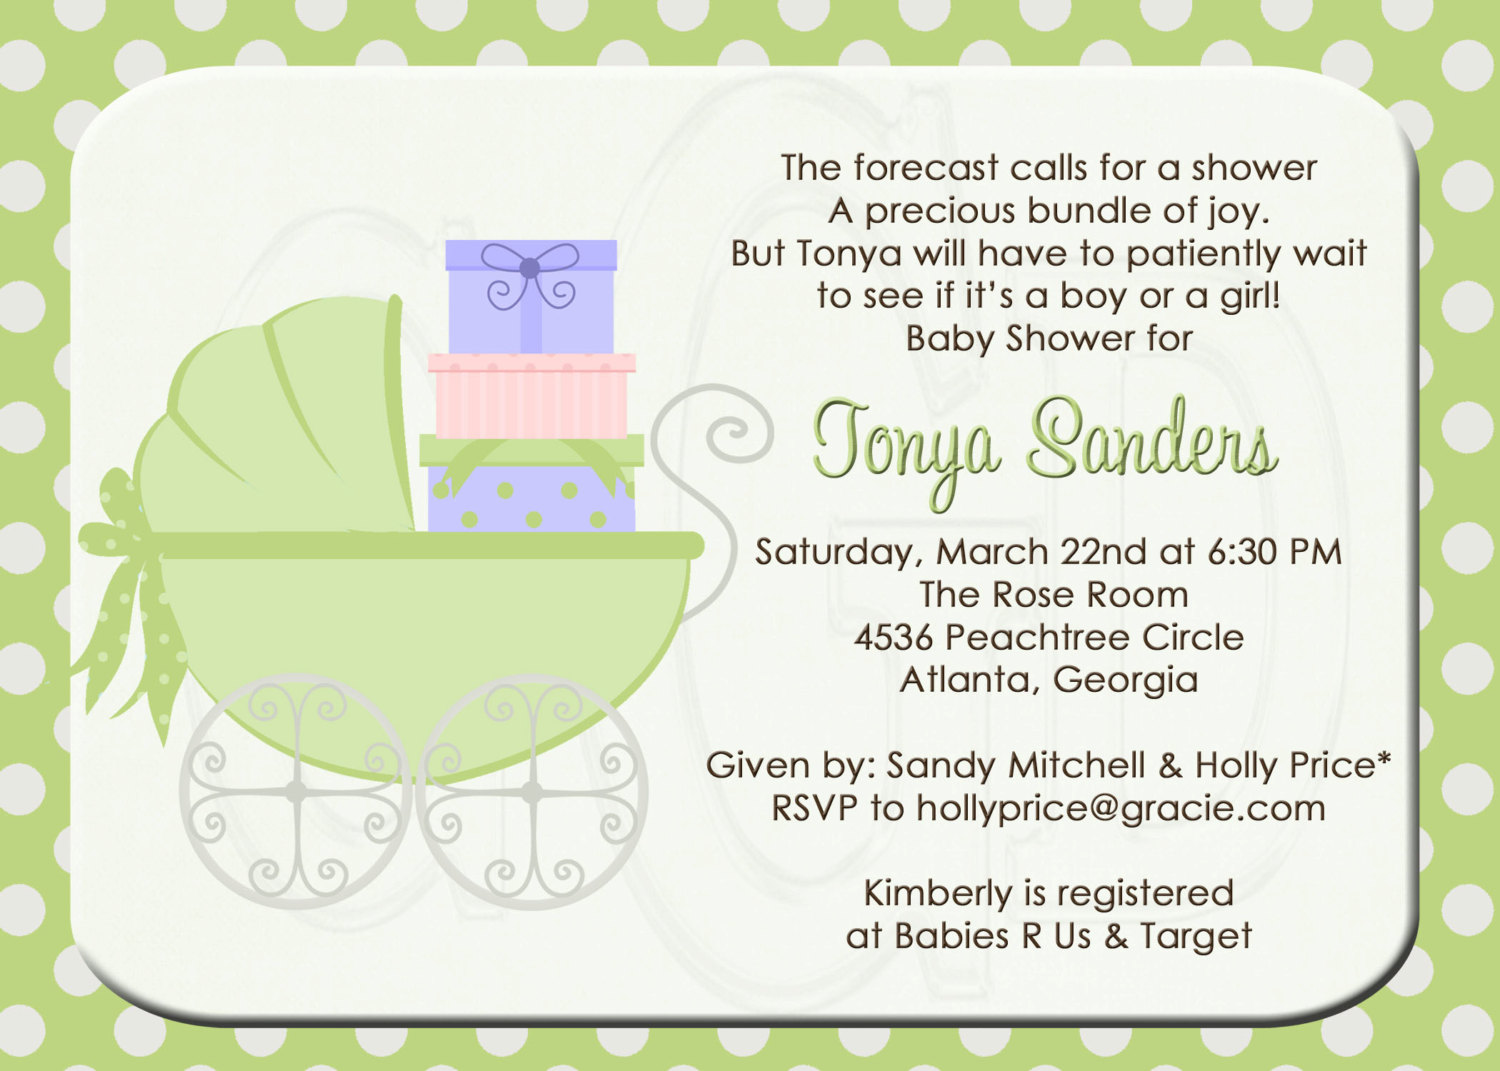 Full Size of Baby Shower:baby Shower Halls With Baby Shower At The Park Plus Recuerdos De Baby Shower Together With Fun Baby Shower Games As Well As Baby Shower Hostess Gifts And Baby Shower Verses Baby Shower Hampers Baby Shower Baby Shower Creative Baby Shower Ideas Baby Shower Halls